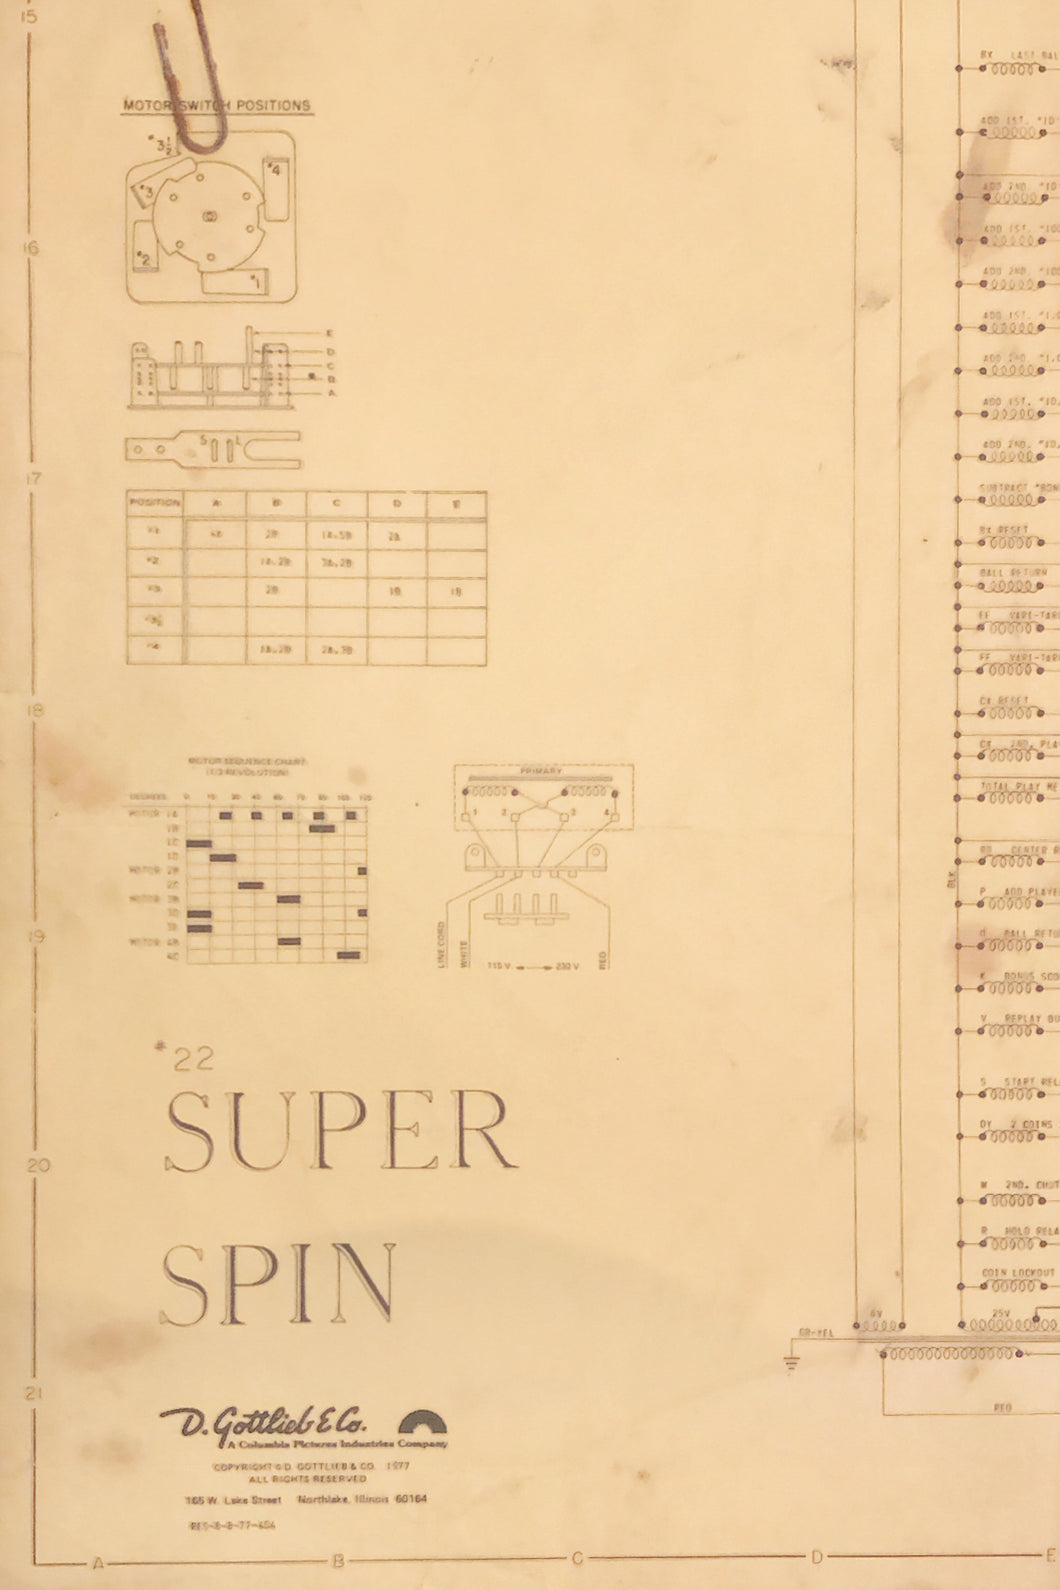 Super Spin Pinball Schematic's